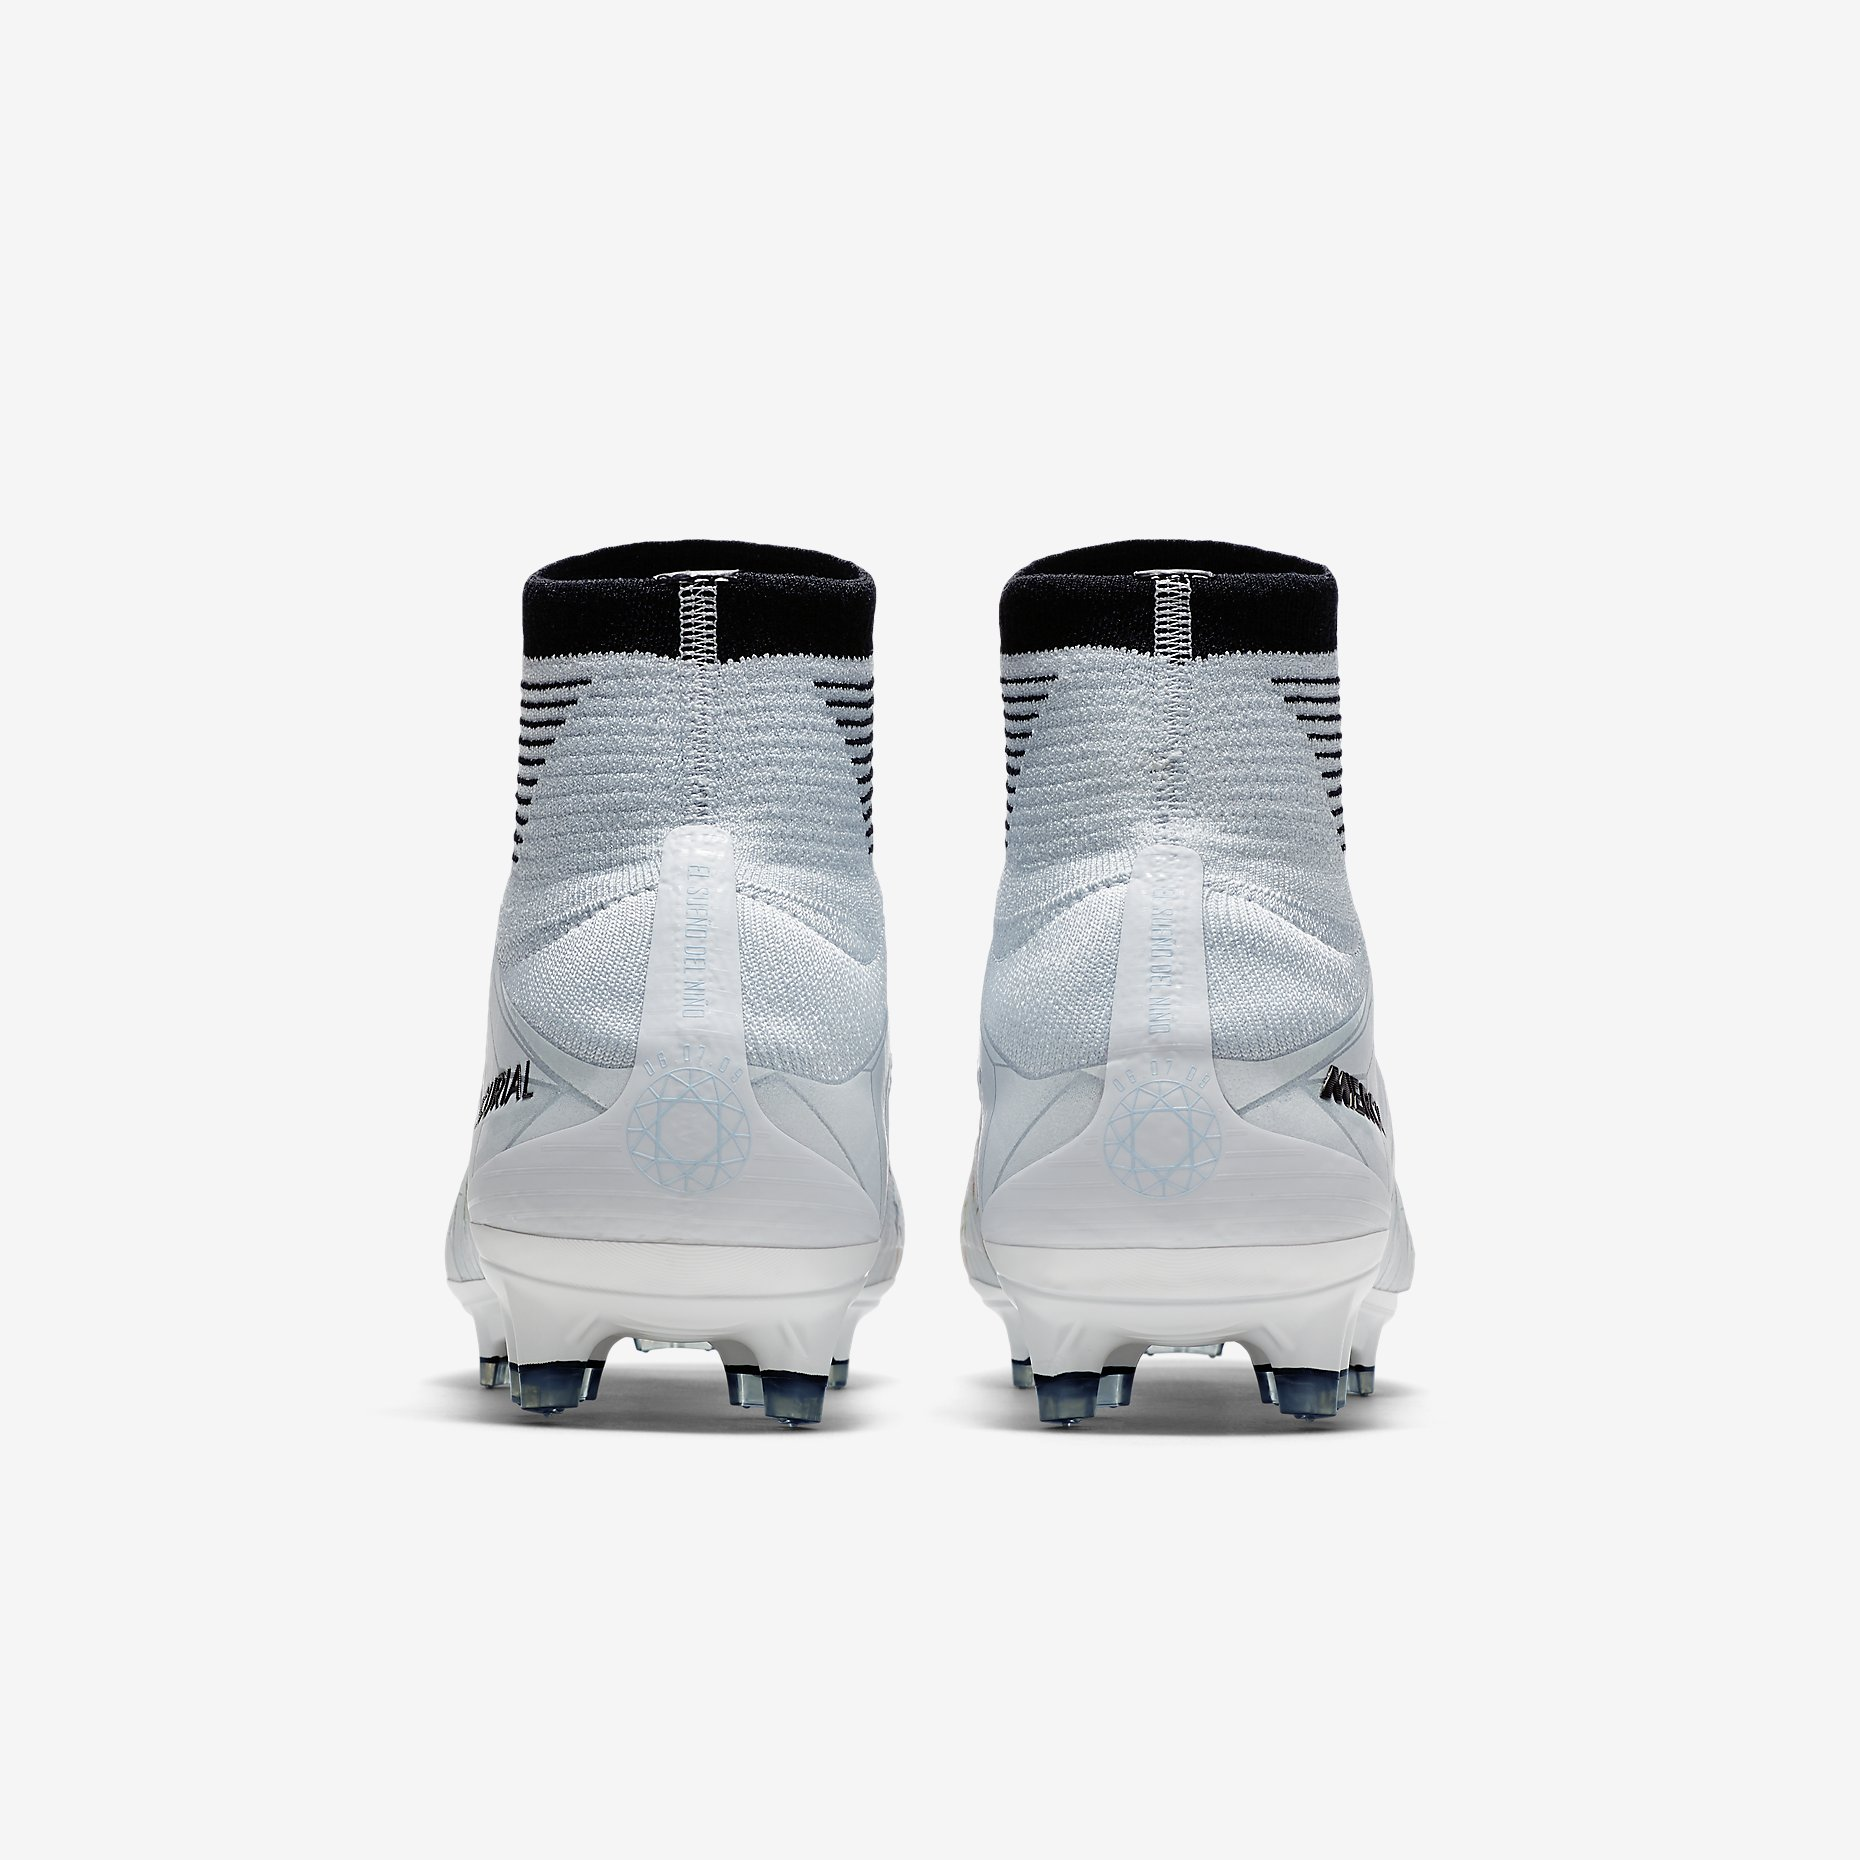 943fca4e88eac ... Click to enlarge image  nike_mercurial_superfly_v_cr7_fg_cut_to_brilliance_blue_tint_white_volt_black_f.jpg  ...